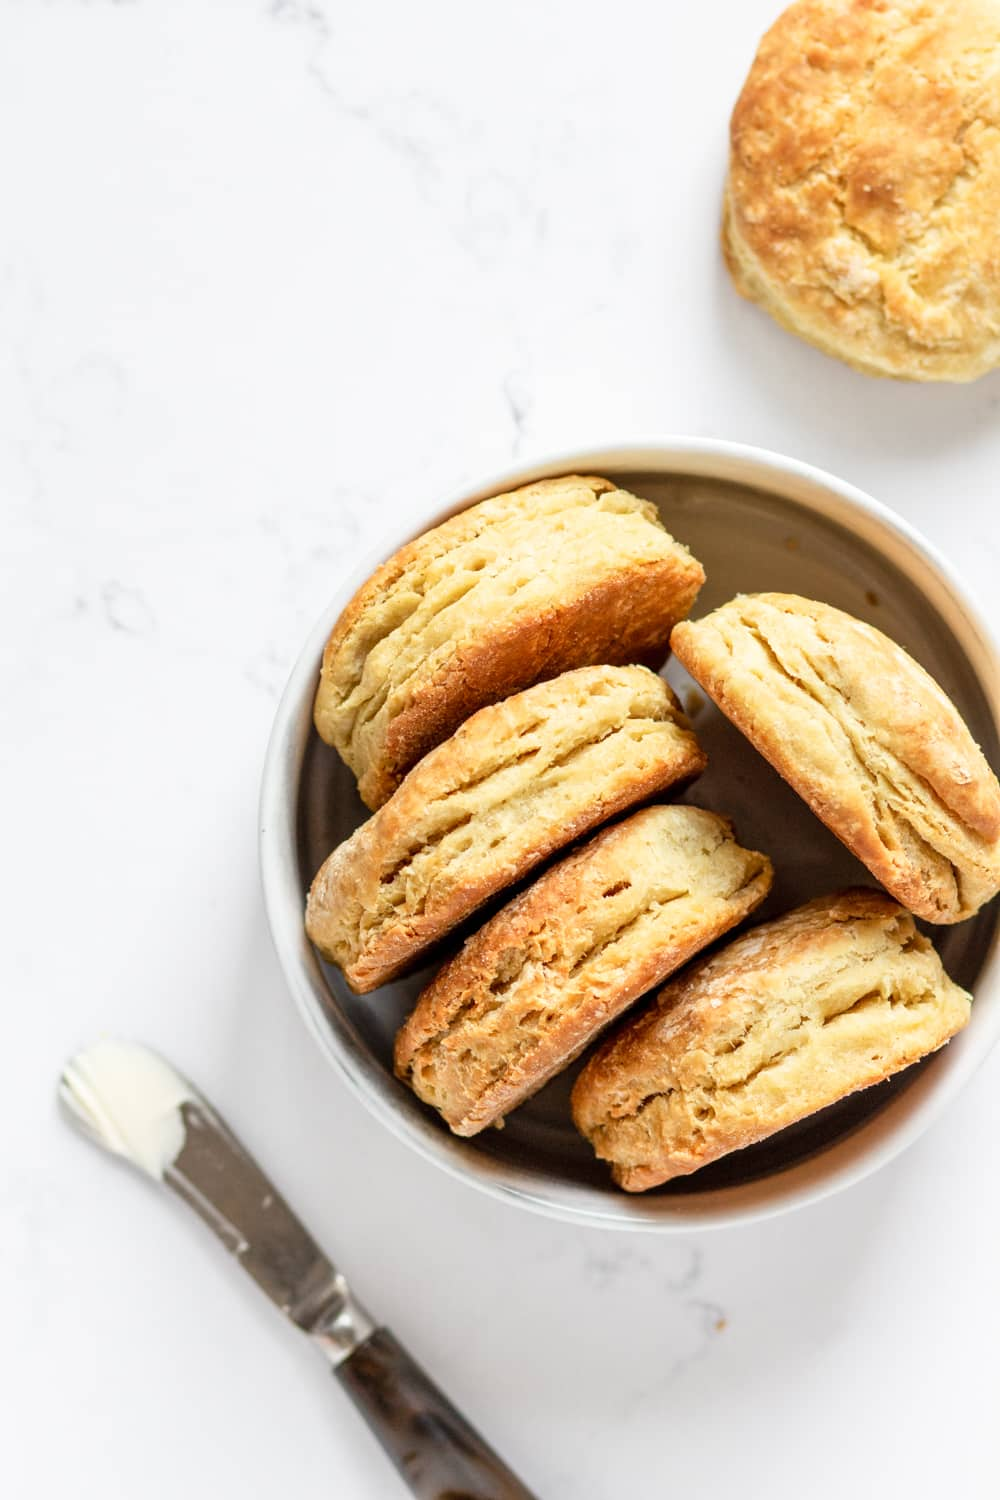 An overhead view of five vegan biscuits on their side in a white bowl. There is a knife with butter on it in front of the bowl. A vegan biscuit is behind the bowl. Everything is on a white counter.